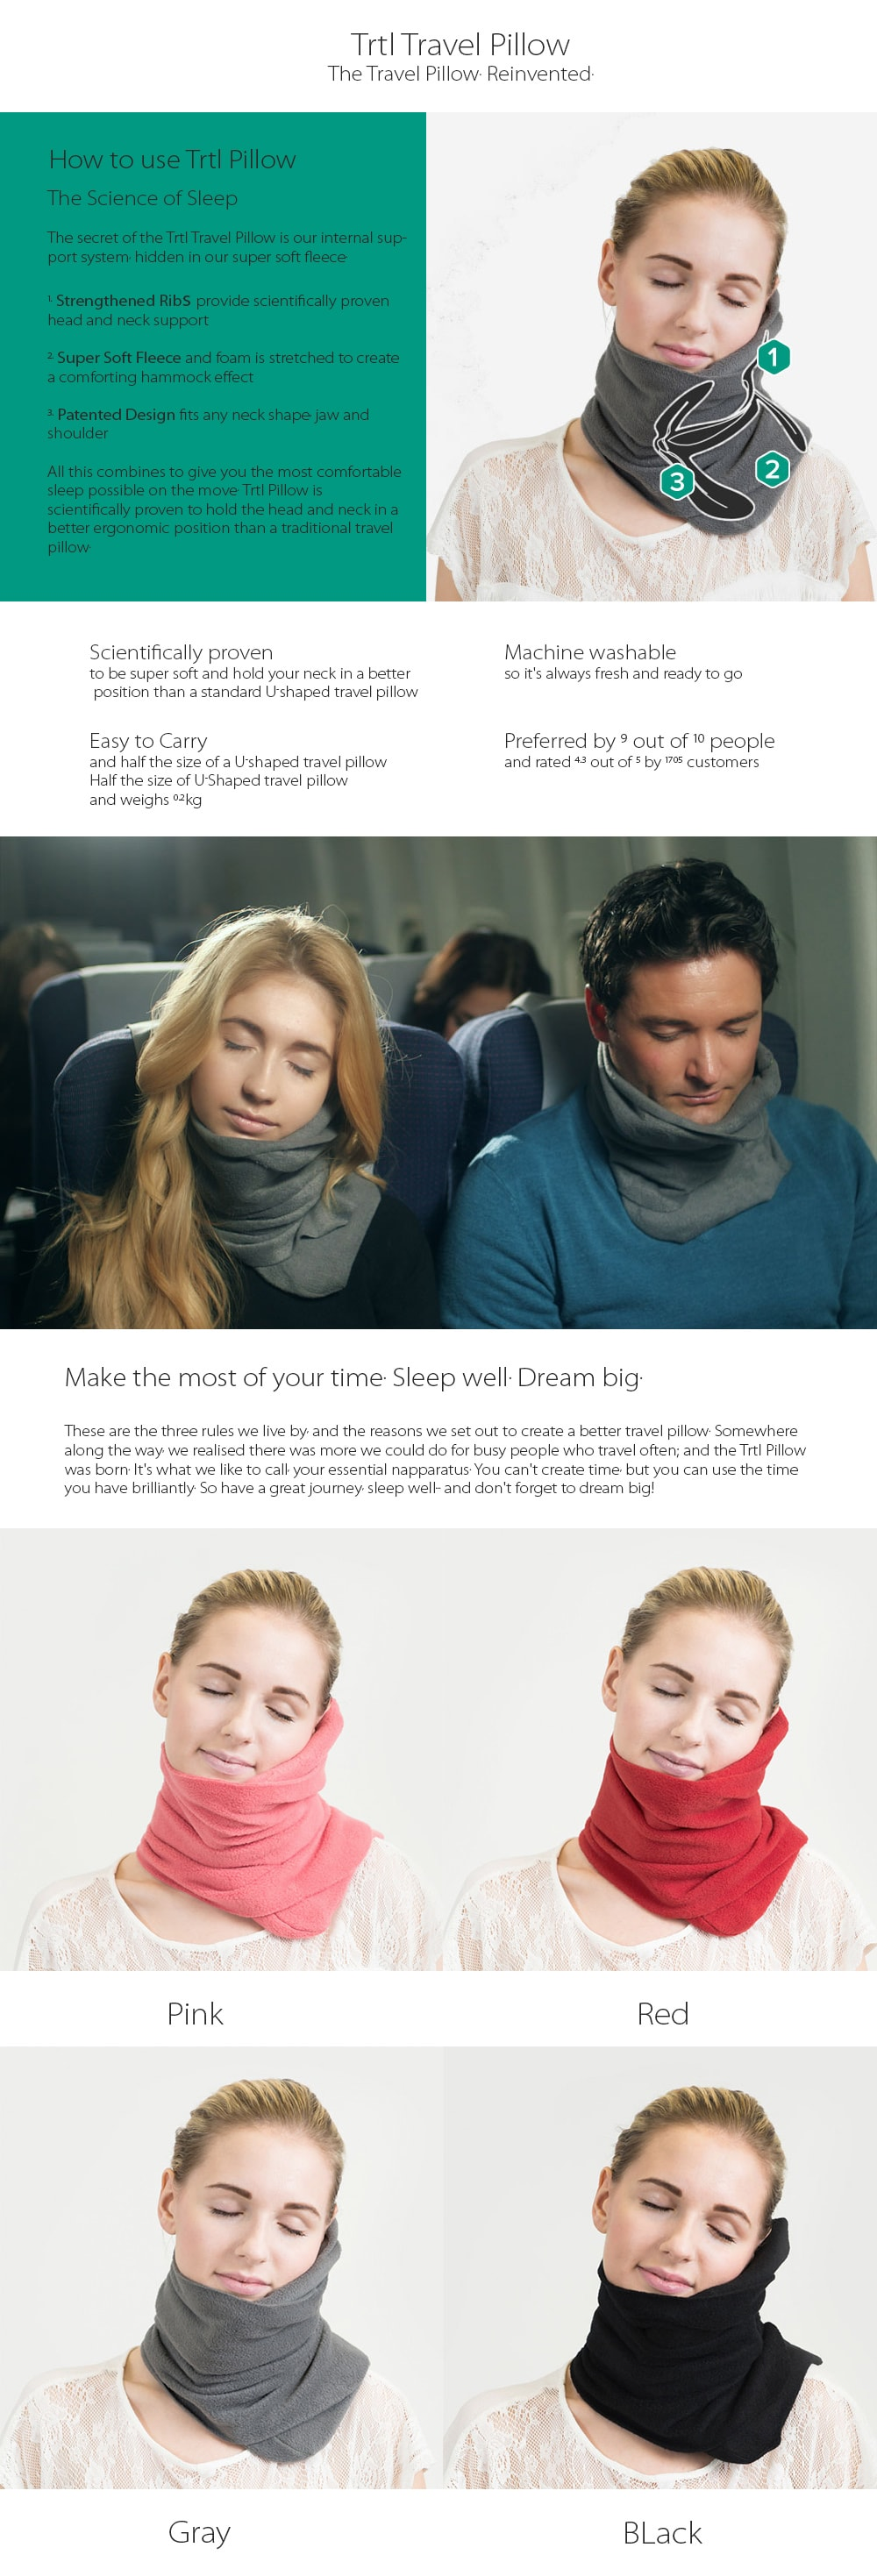 Trtl Travel Pillow The Science of Sleep